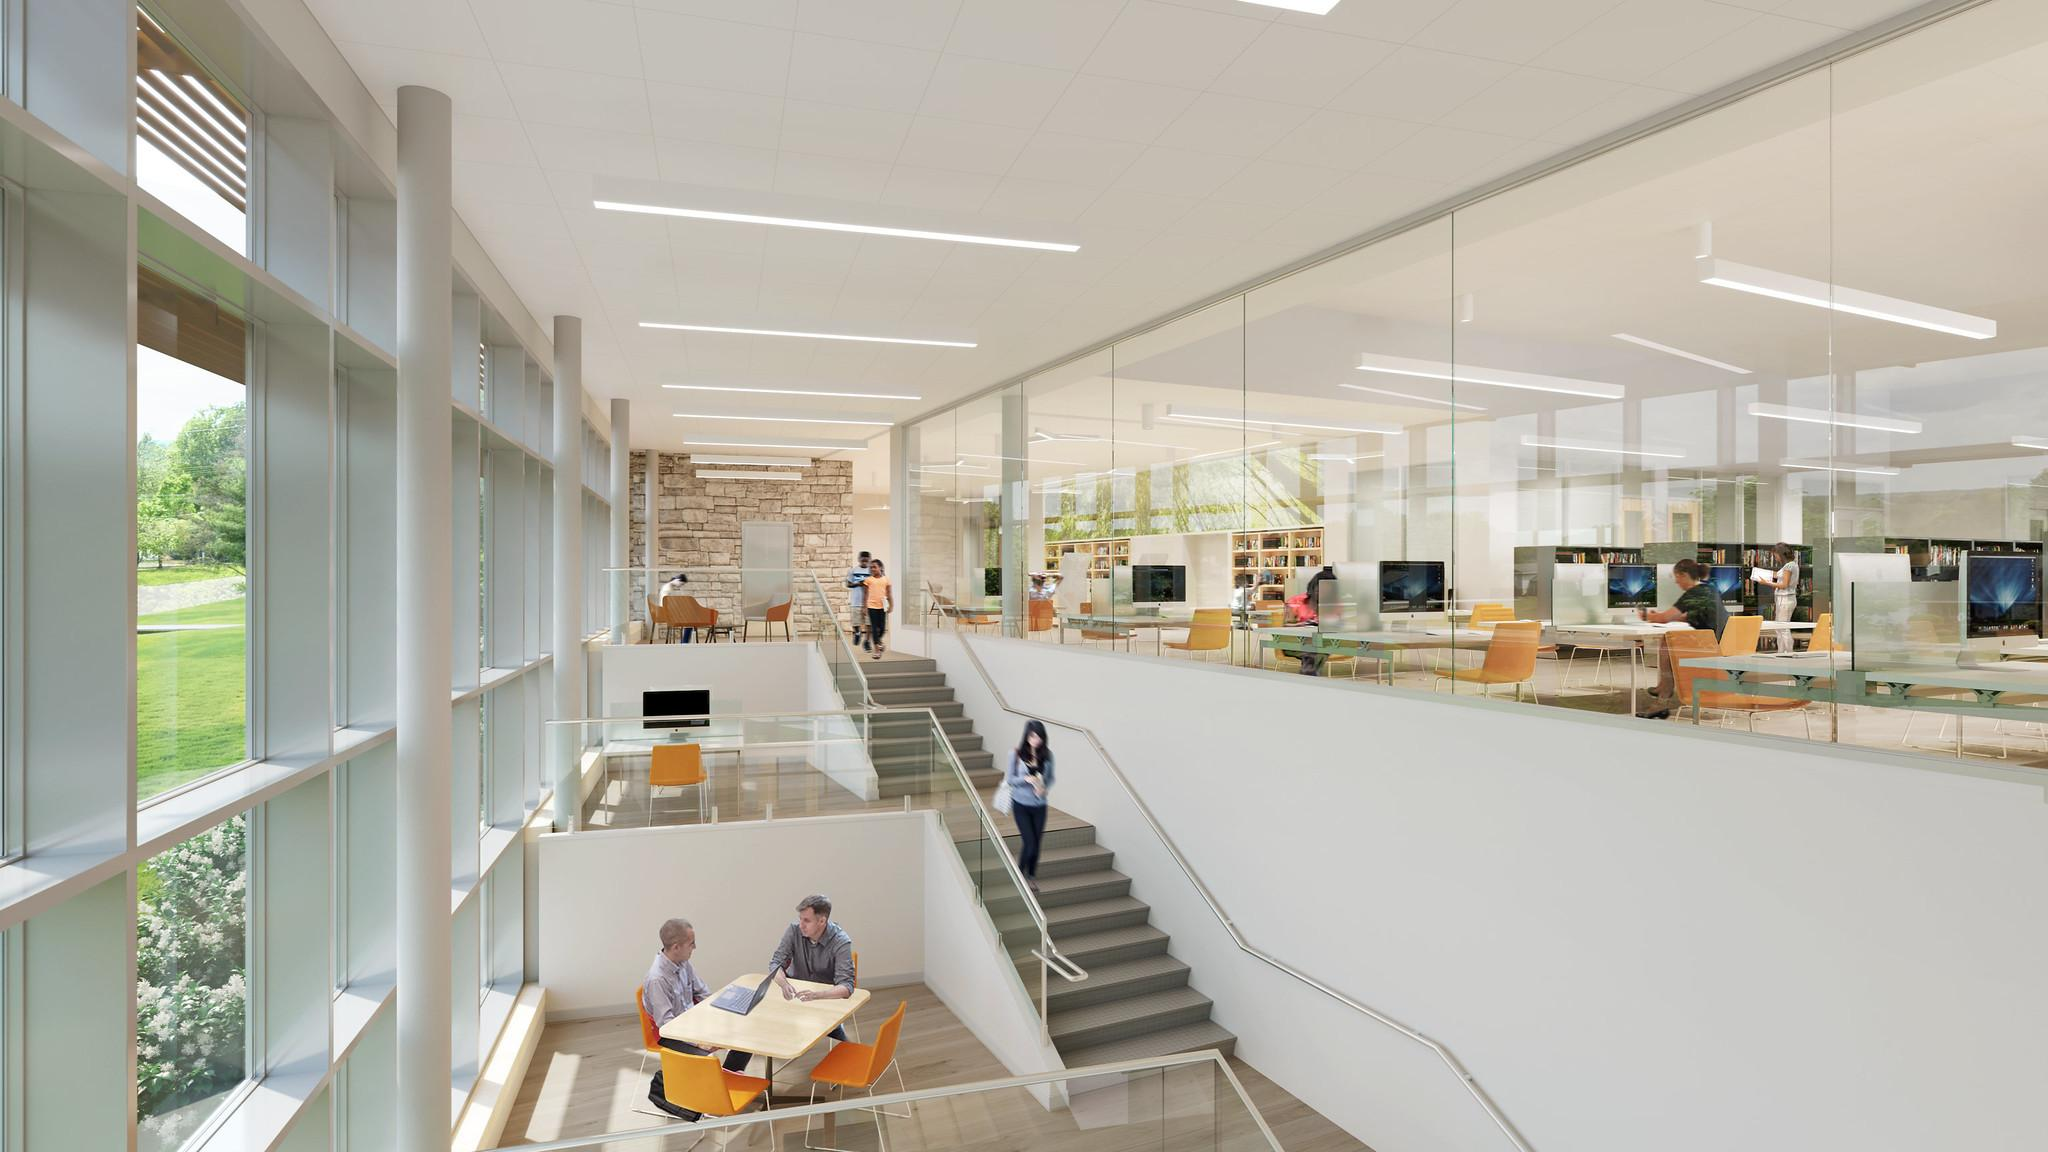 A rendered image of the Library's atrium shows small meeting spaces on the left and stairs leading to the main floor. In the background, bookshelves and computer workstations are visible behind a large glass wall. Patrons are scattered through the spaces.